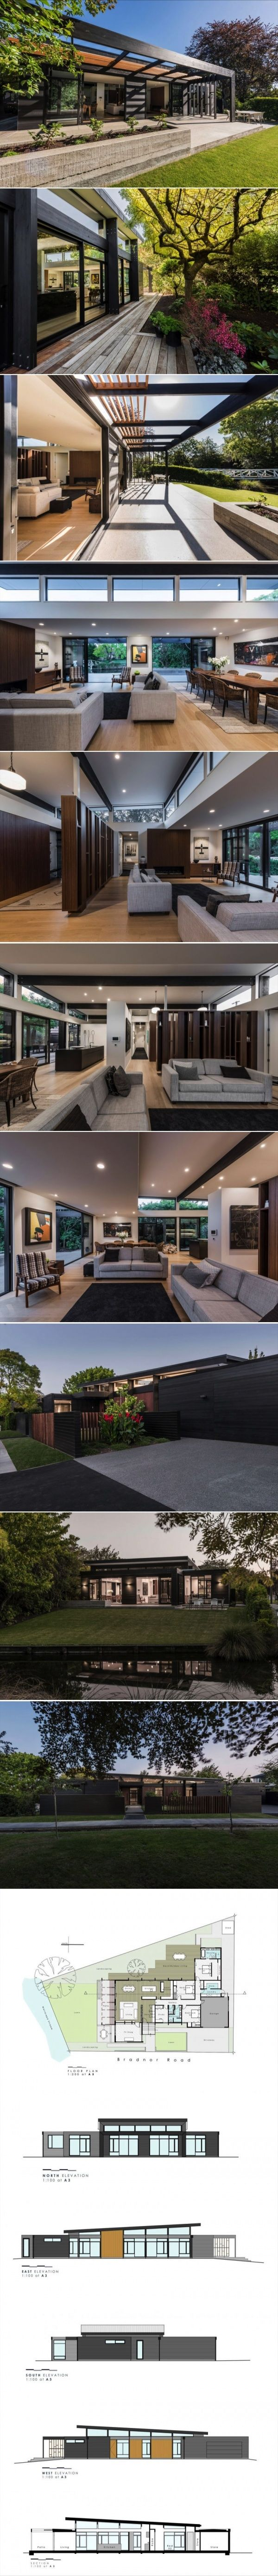 Cymon allfrey architects ltd design a light and open contemporary interior in new zealand architects contemporary and interiors